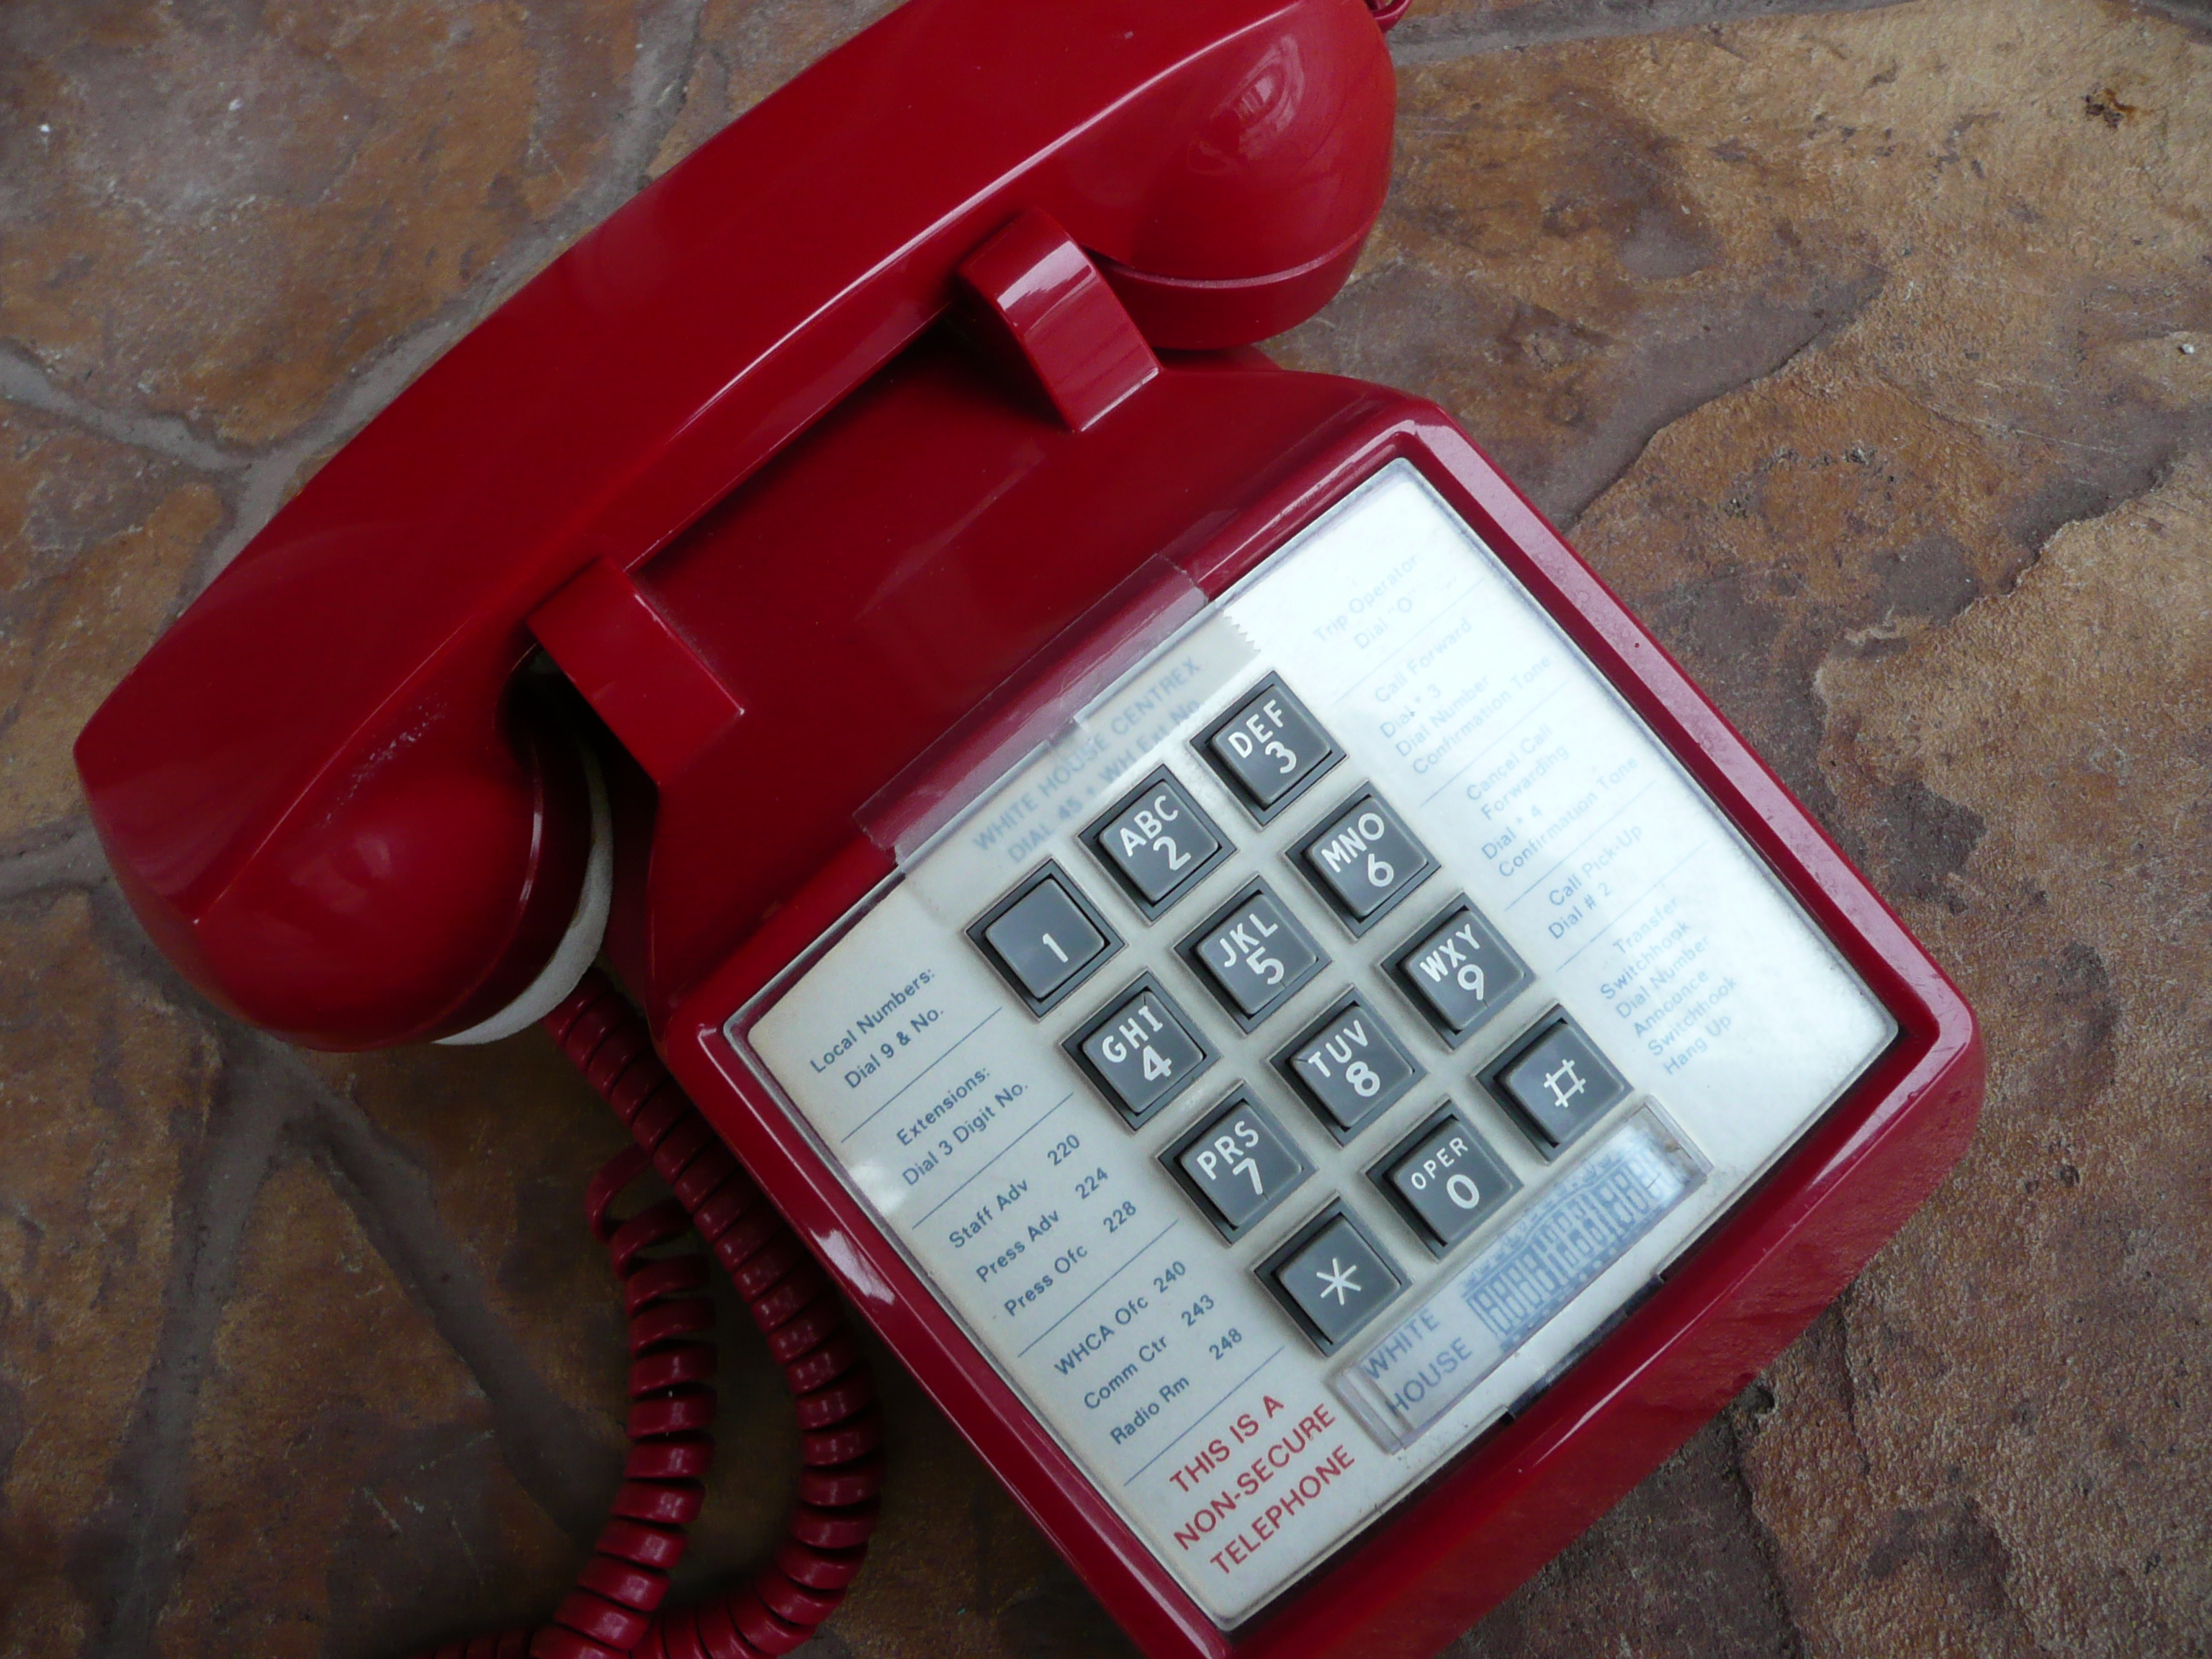 Official White House Phone